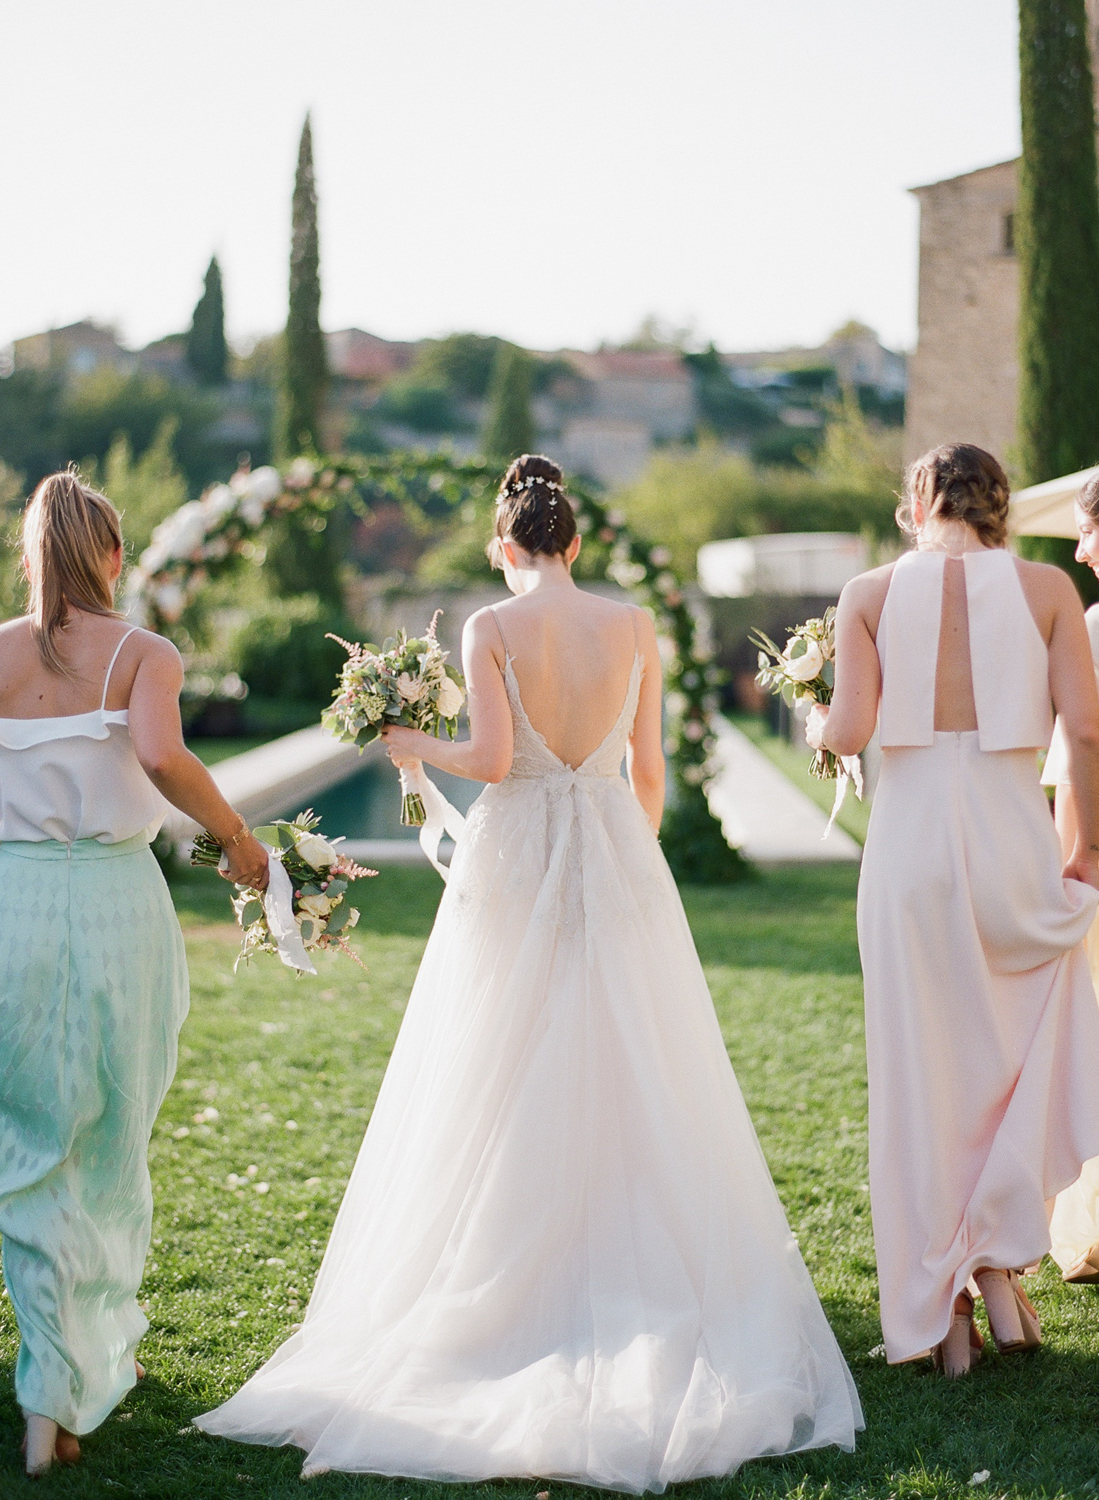 Bride and bridesmaids walk together near the chateau in Gordes, France; Sylvie Gil Photography